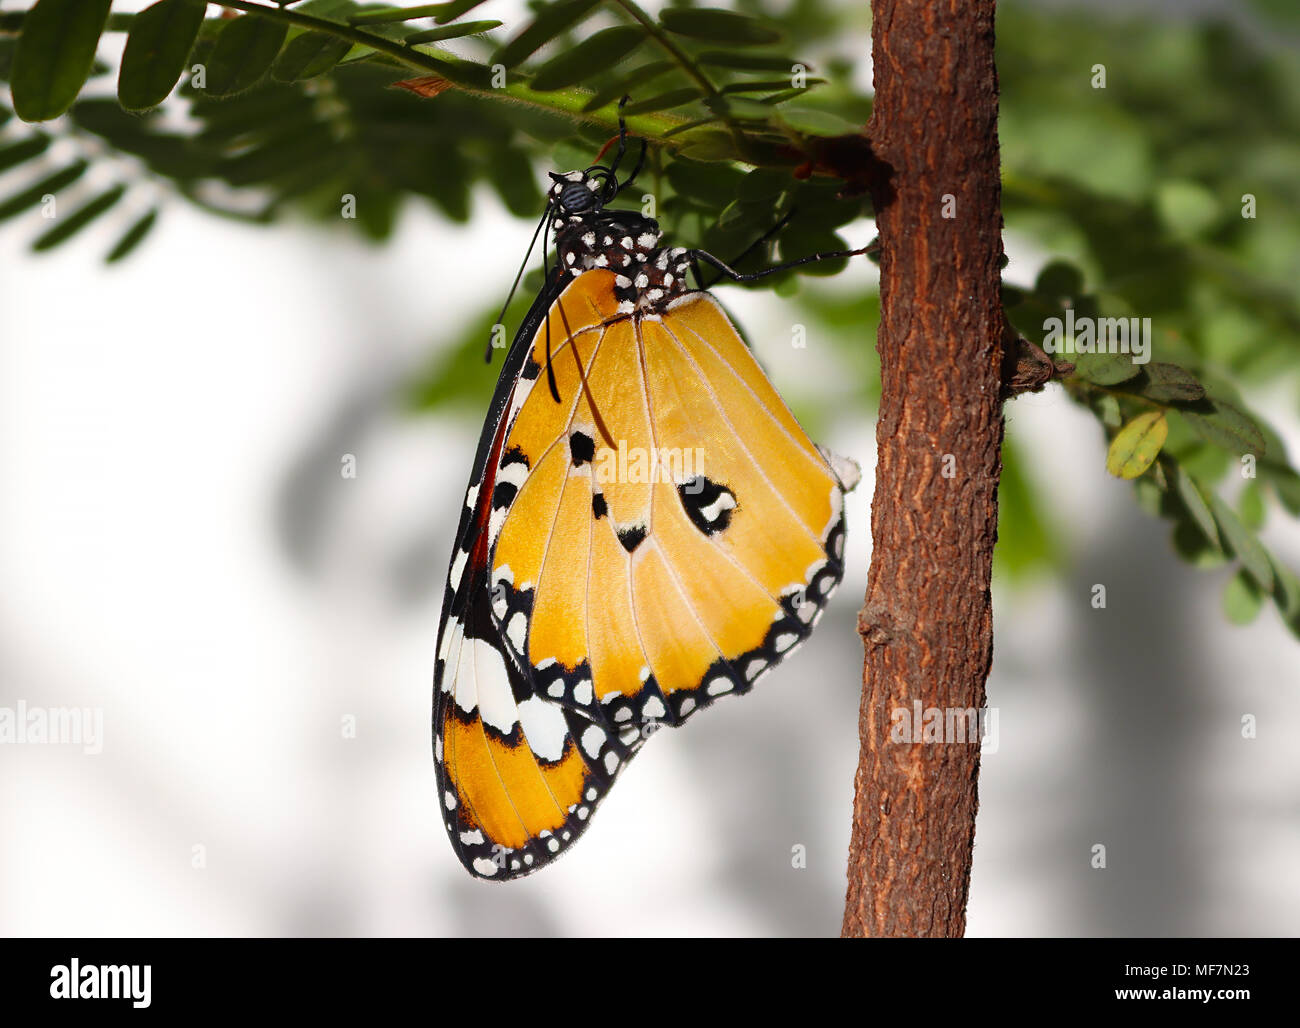 Plain tiger butterfly freshly emerged out of its pupa and ready to fly - Stock Image